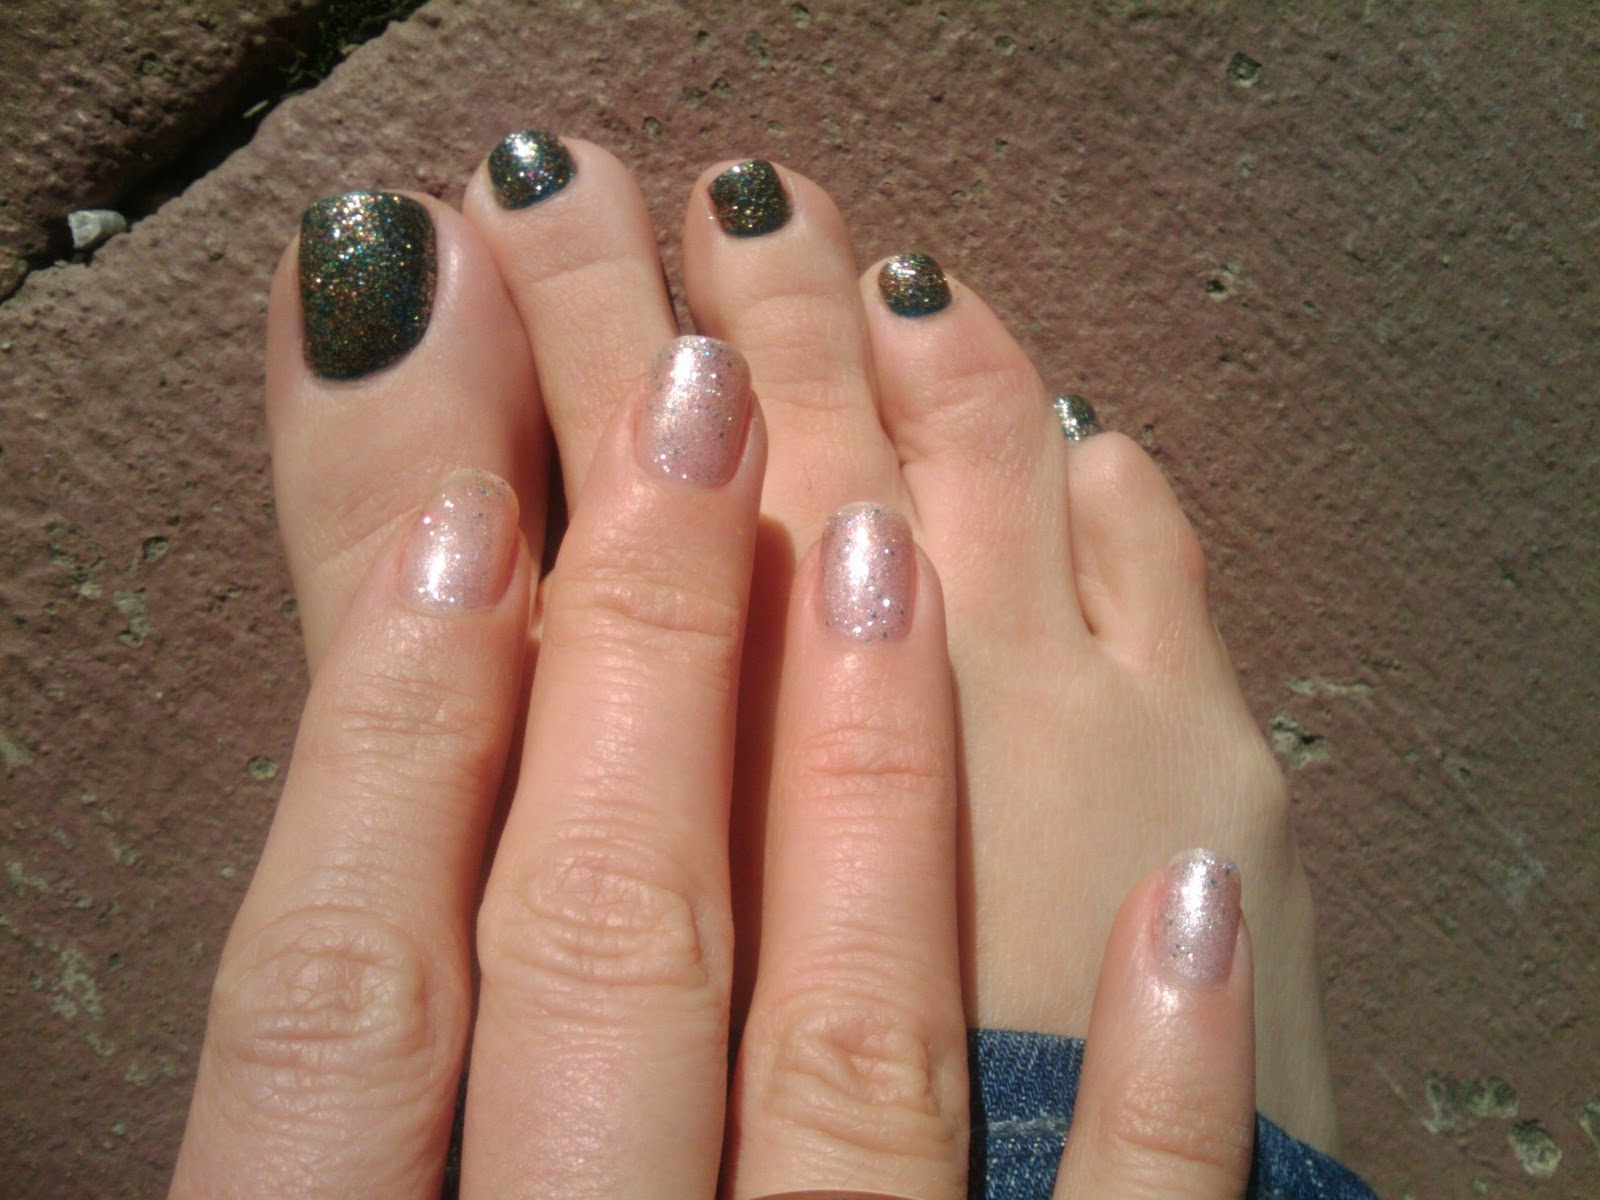 sparkle love: I love sparkles and nail polish!